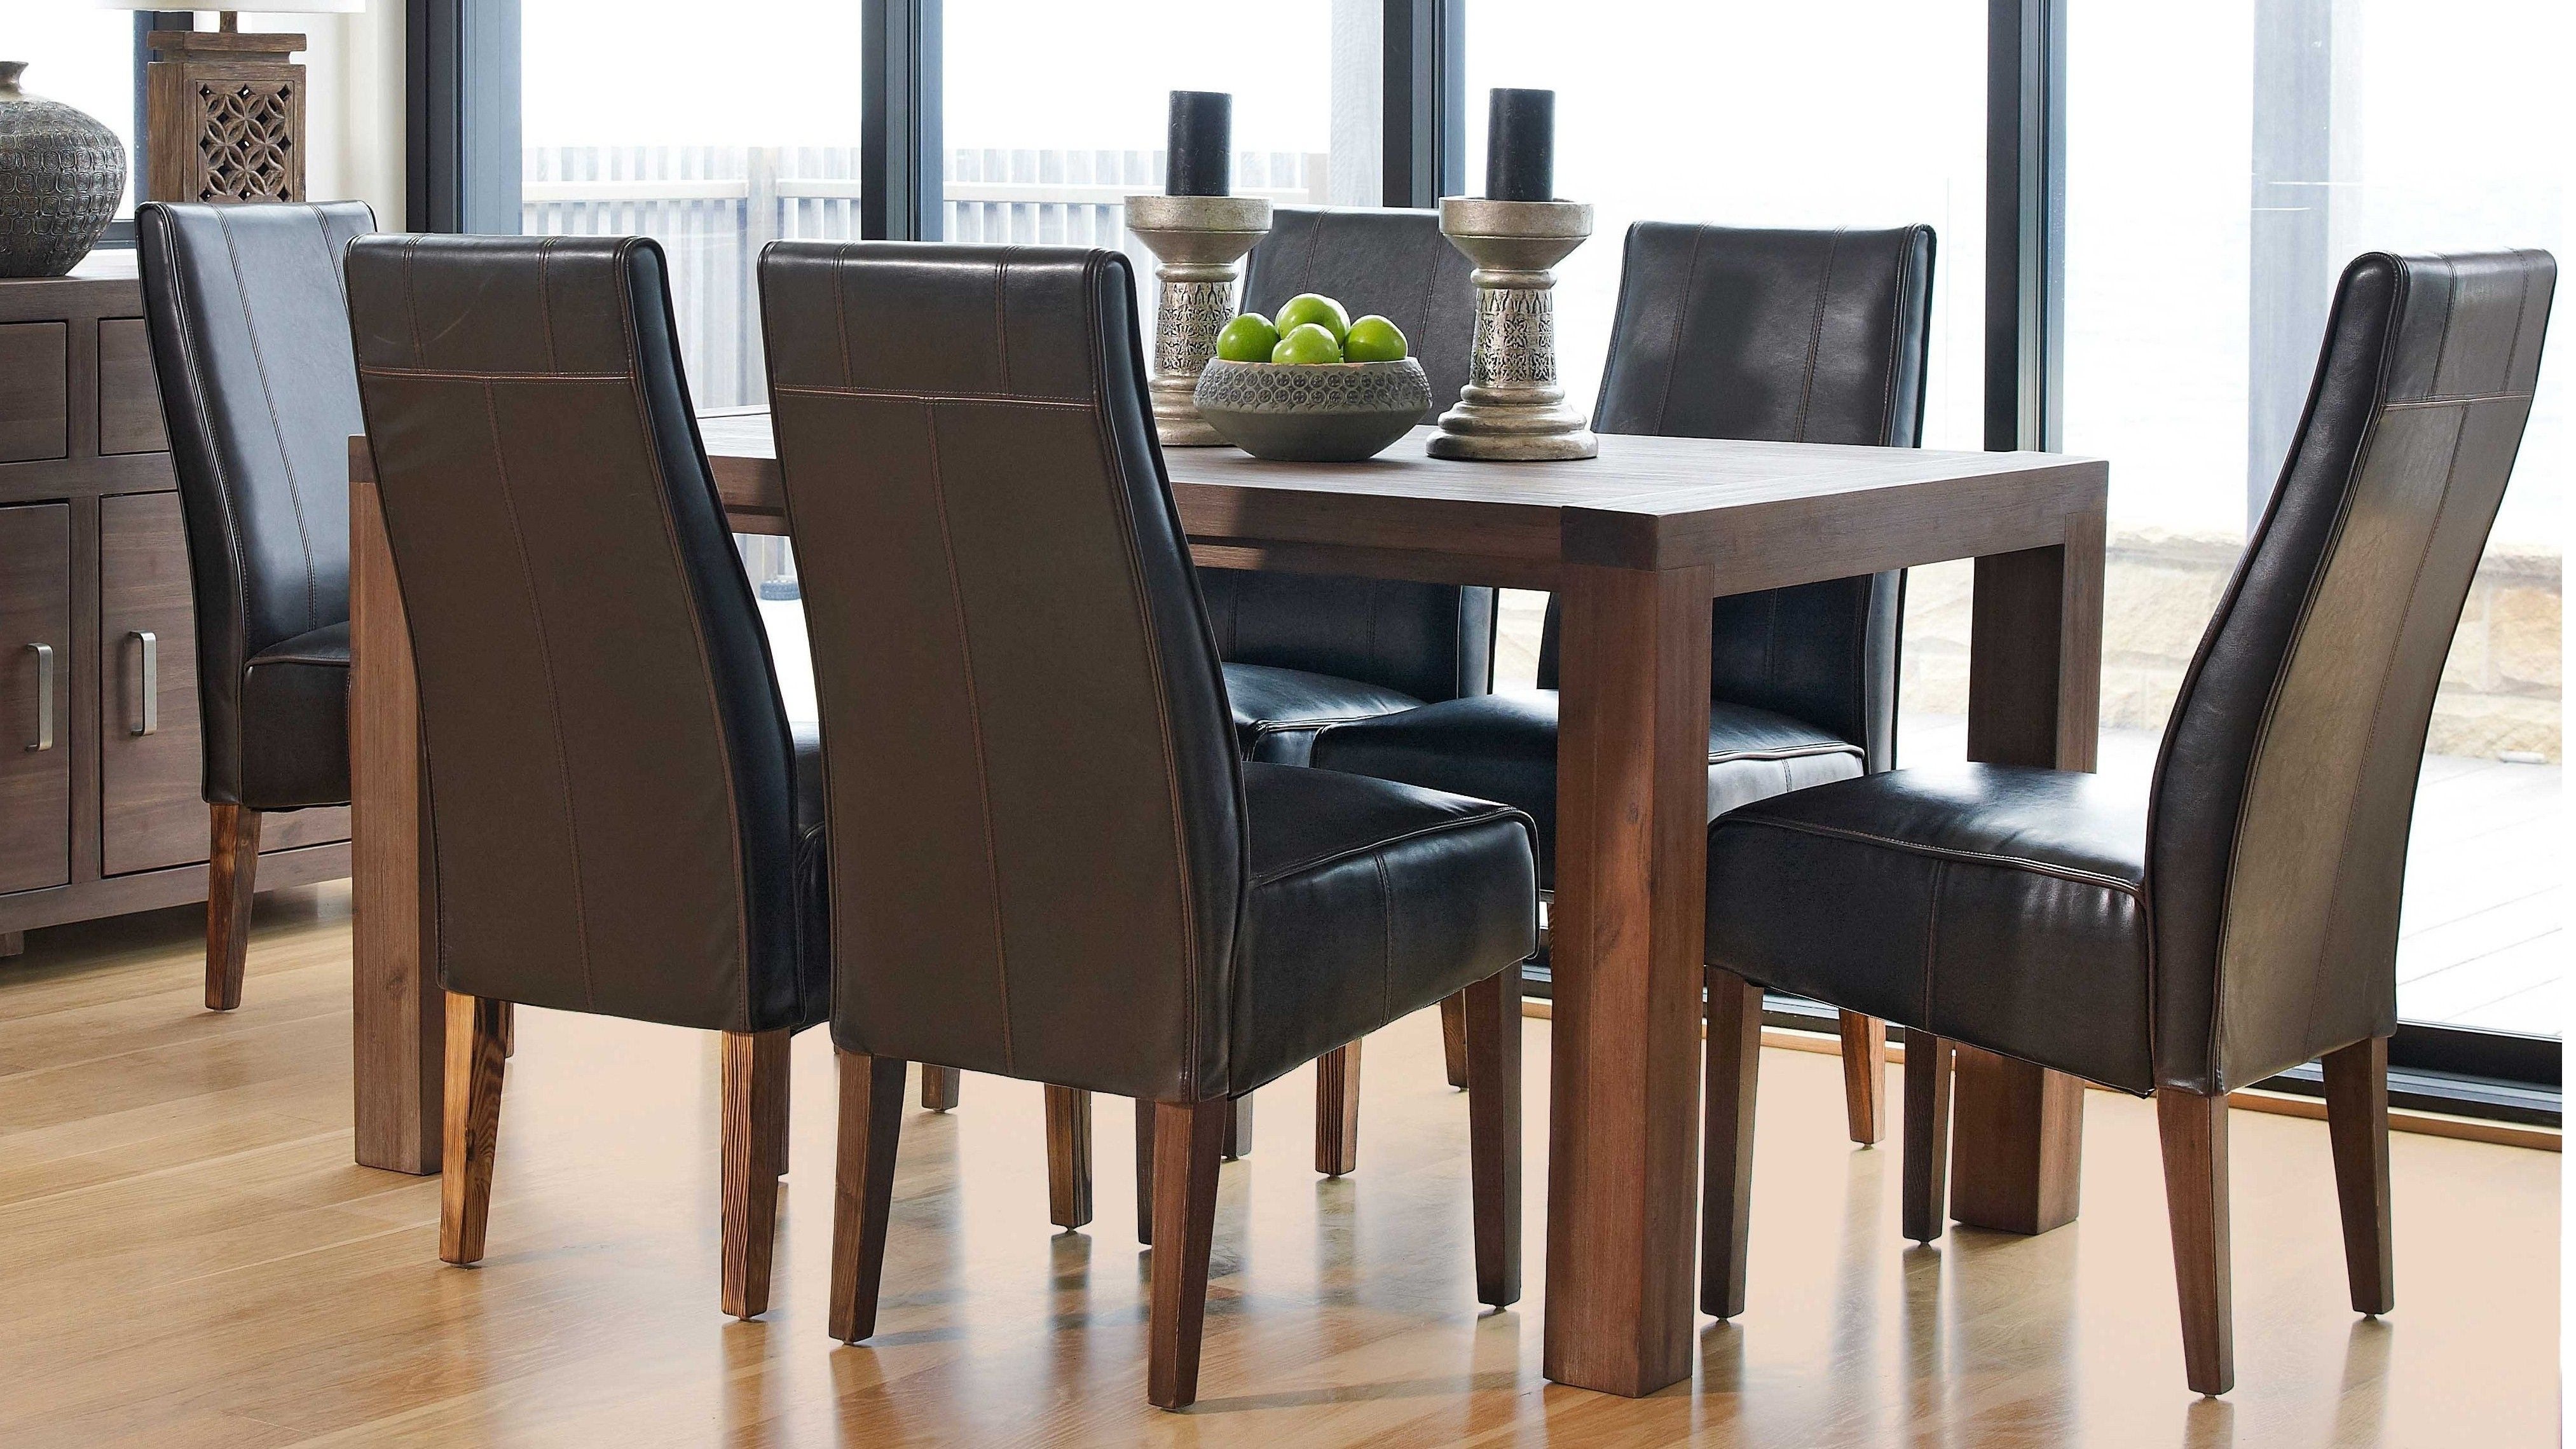 dining room chairs home goods chairman of the board fraser 1800 7 piece set for pinterest